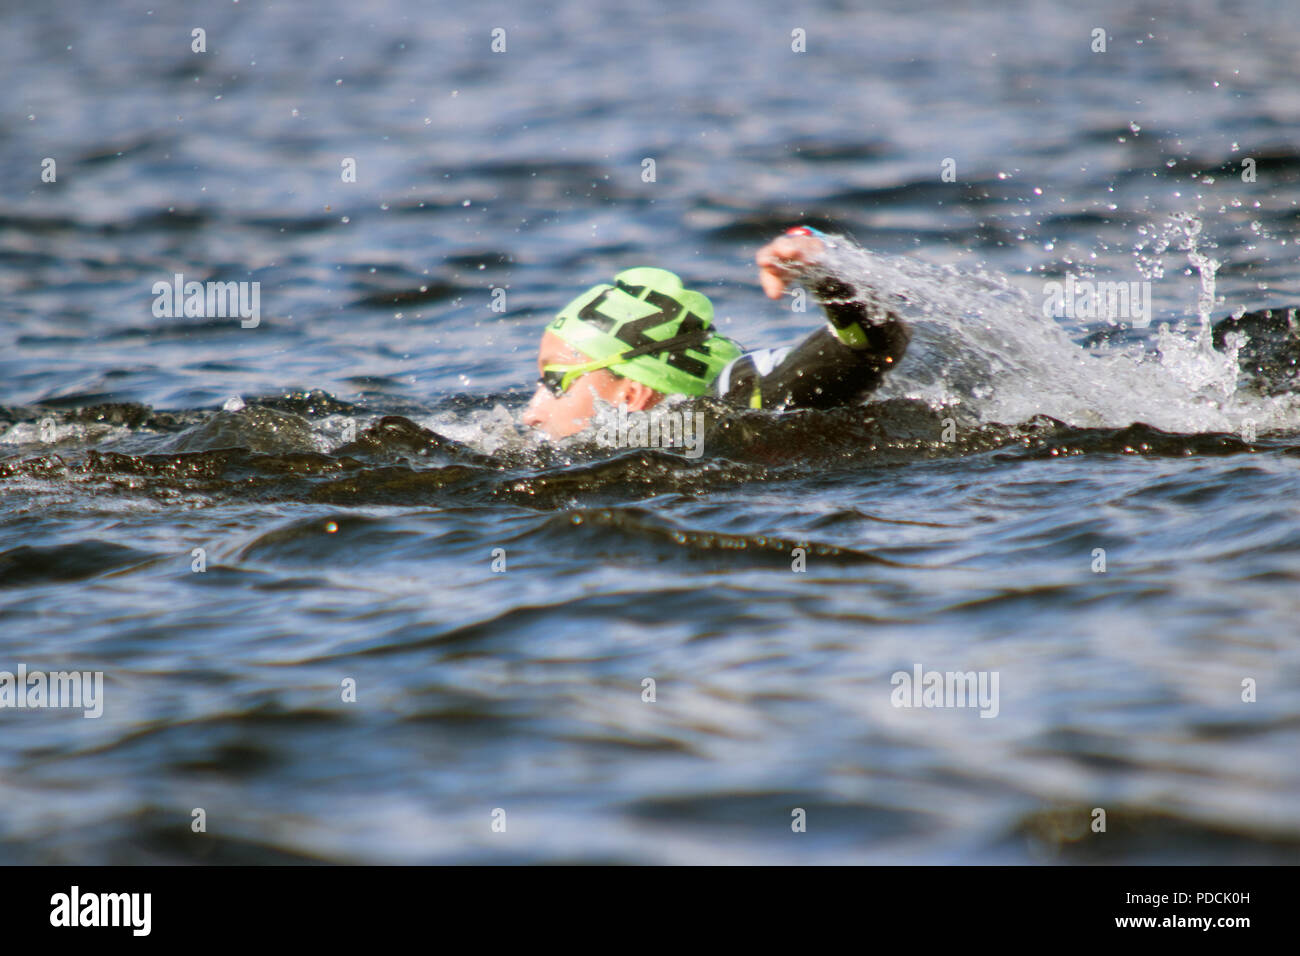 Loch Lomond, Scotland, UK. 9th August, 2018. Czech Republic's Alena Benesova (27) competes in the women's 10-km race final, during Day 8 of the Glasgow 2018 European Championships, at Loch Lomond and The Trossachs National Park. Credit: Iain McGuinness/Alamy Live News - Stock Image